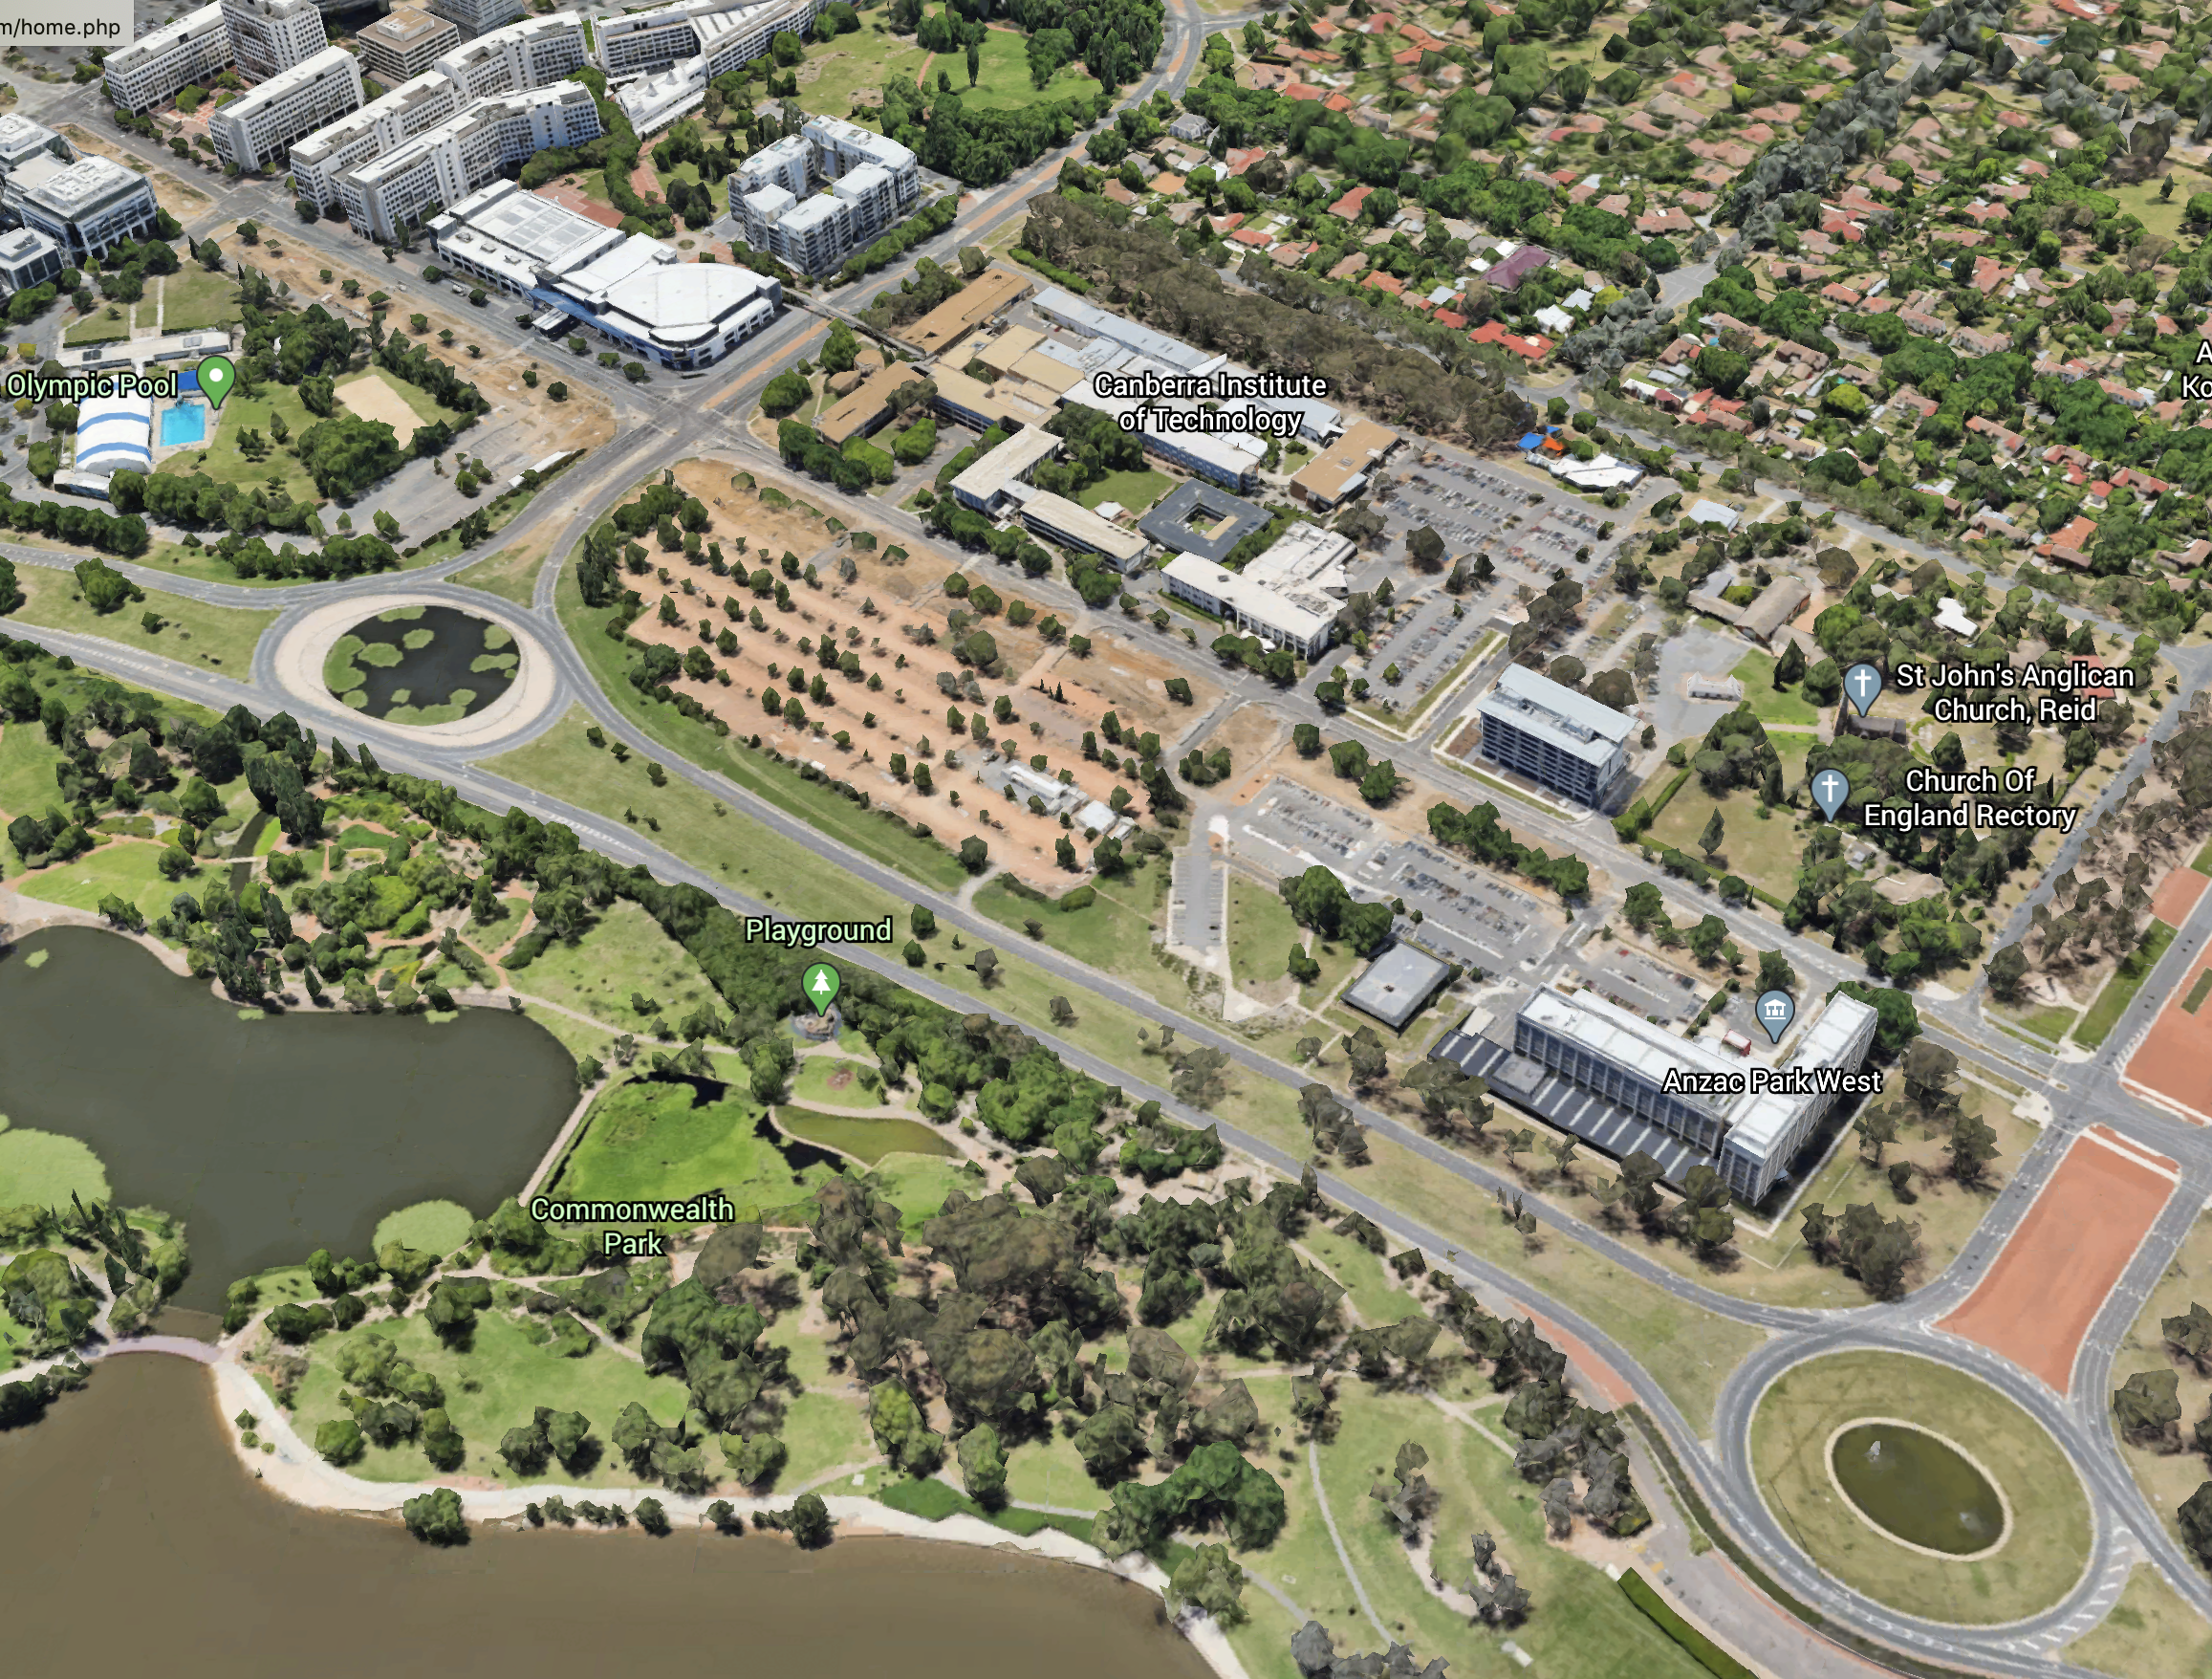 UNSW Canberra City campus